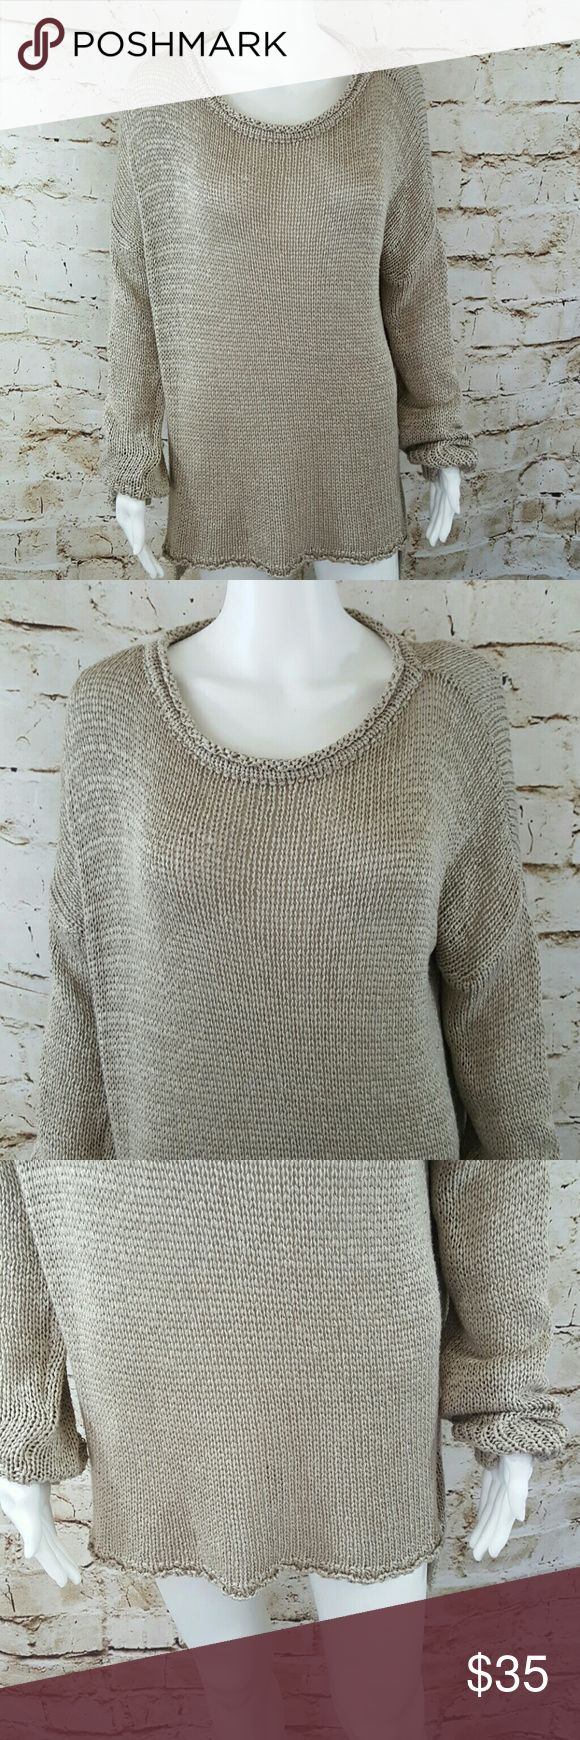 """Brandy Melville one size fits all sweater Excellent condition oversized comfy fit high low hem 23"""" across from armpit to armpit and 24"""" long from shoulder to hem in front and 27"""" long from shoulder to hem in back Brandy Melville  Sweaters"""